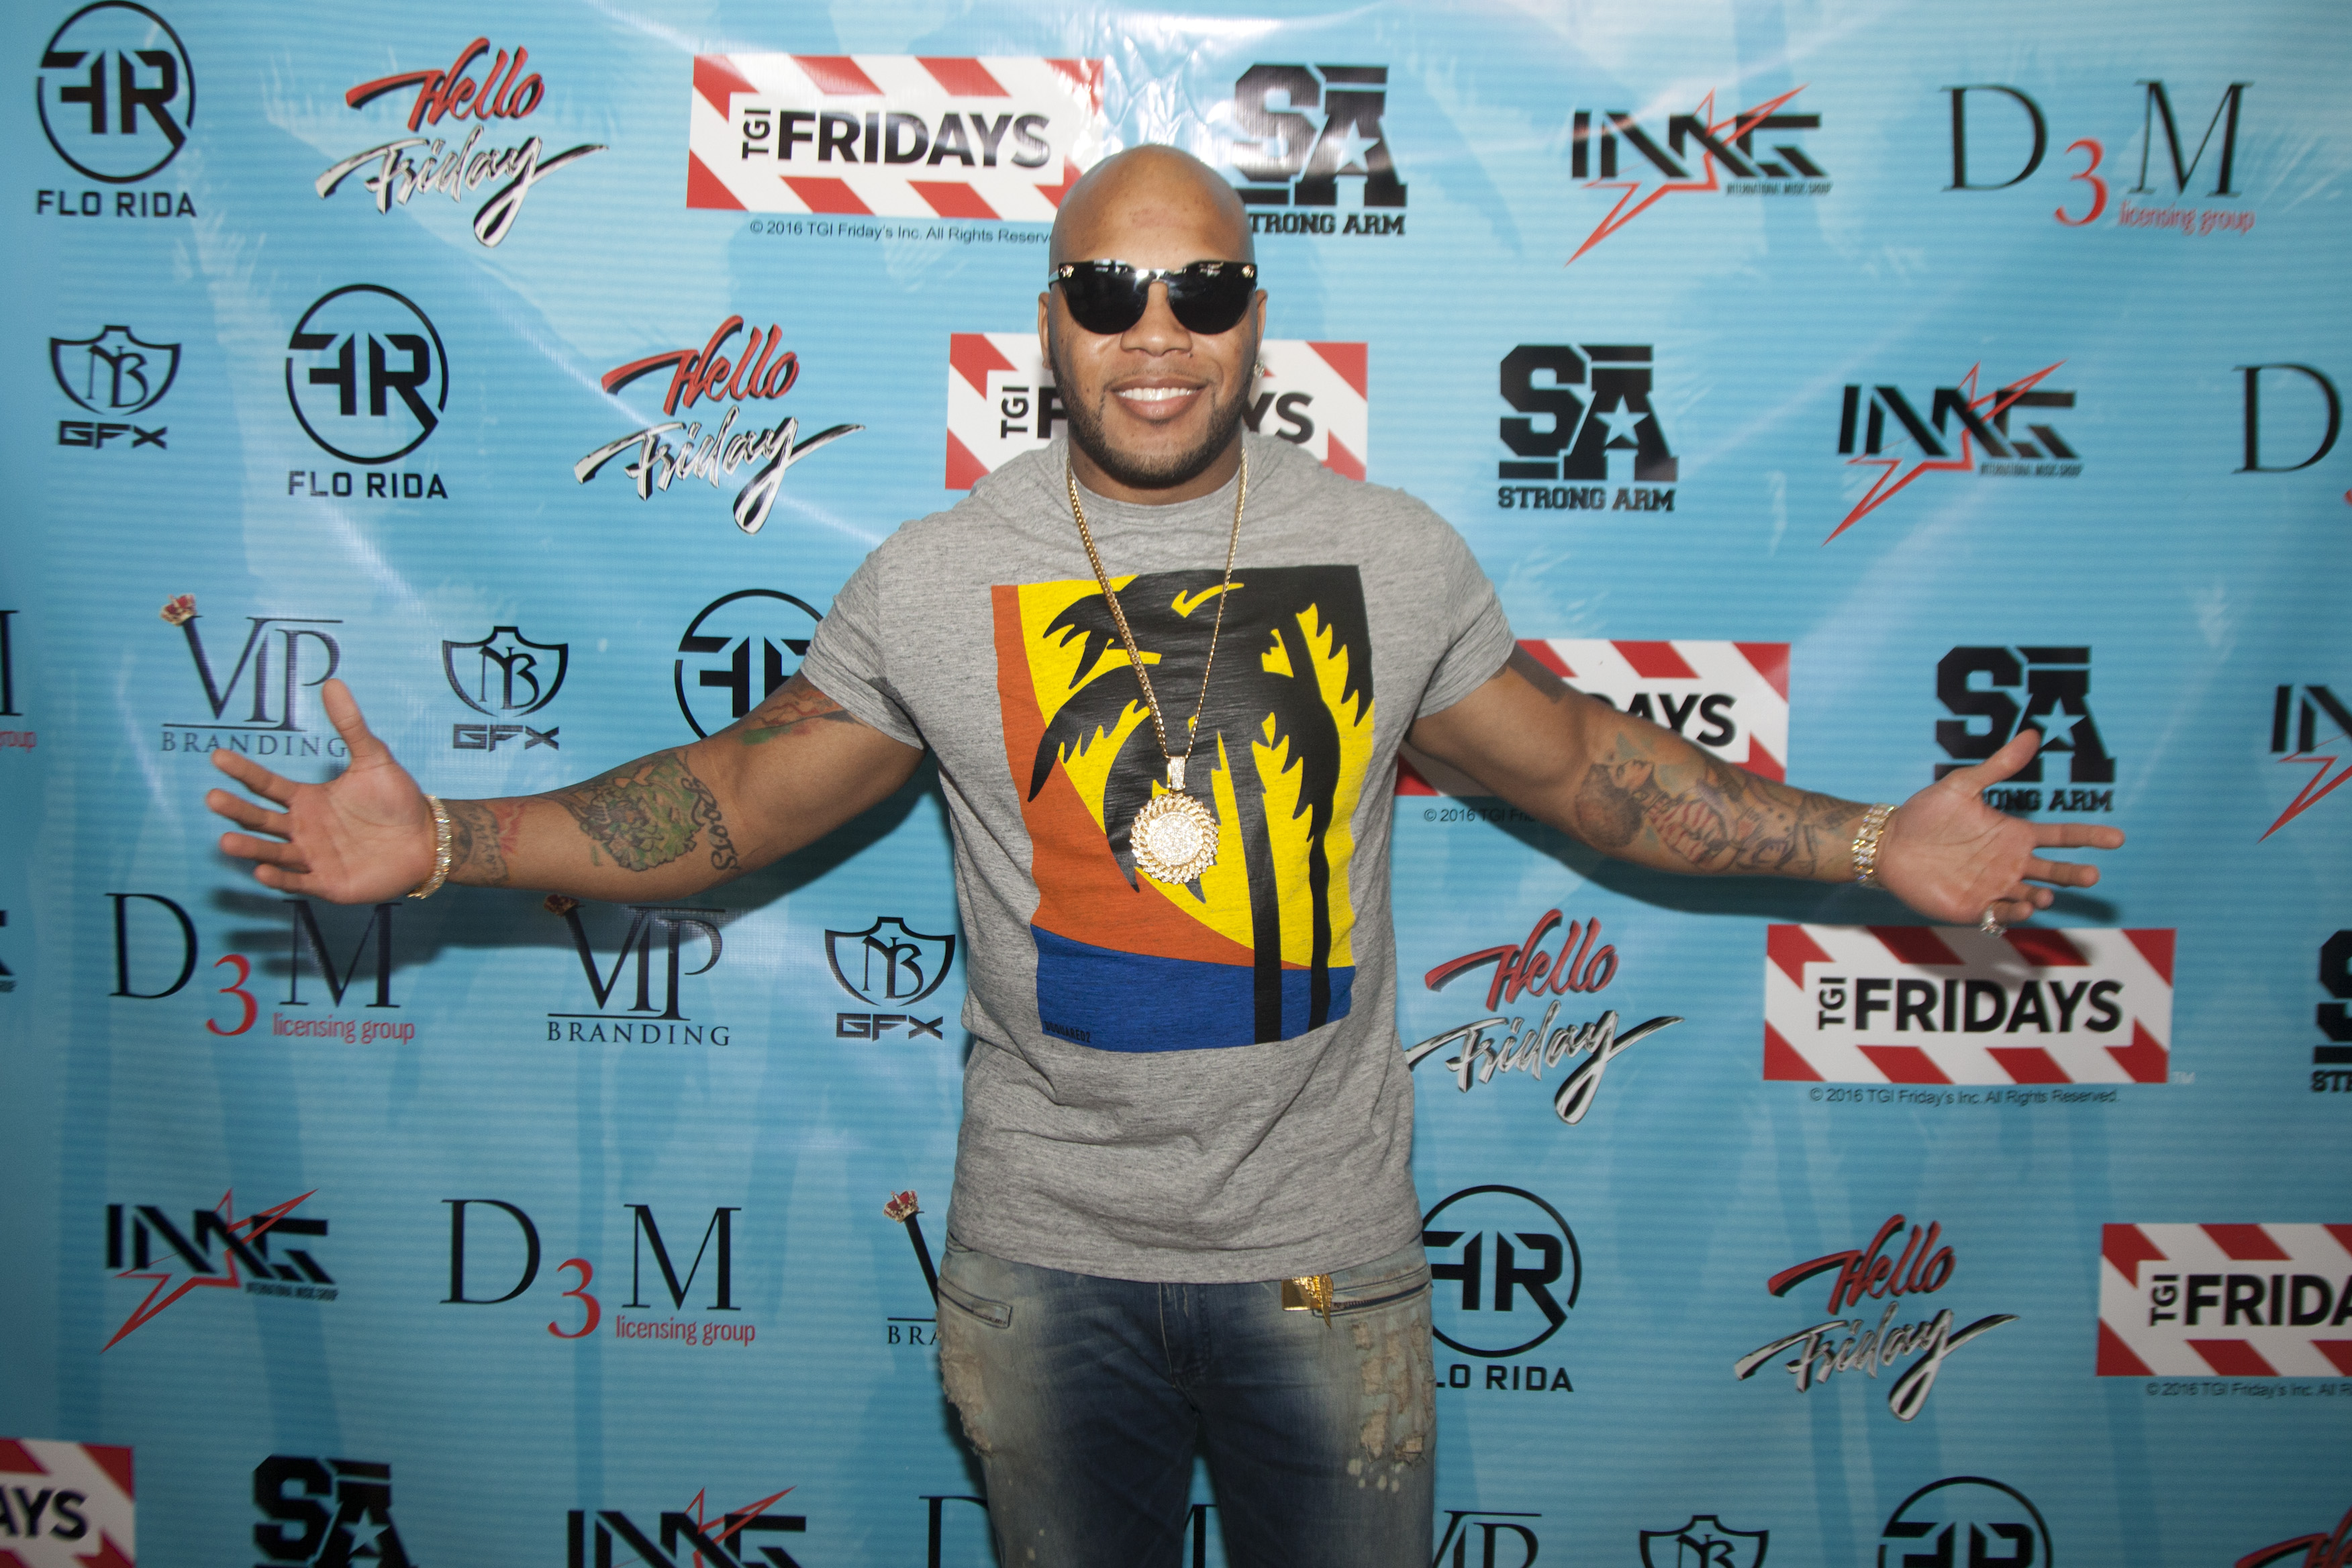 Flo Rida Day in Miami Beach - TGI Fridays